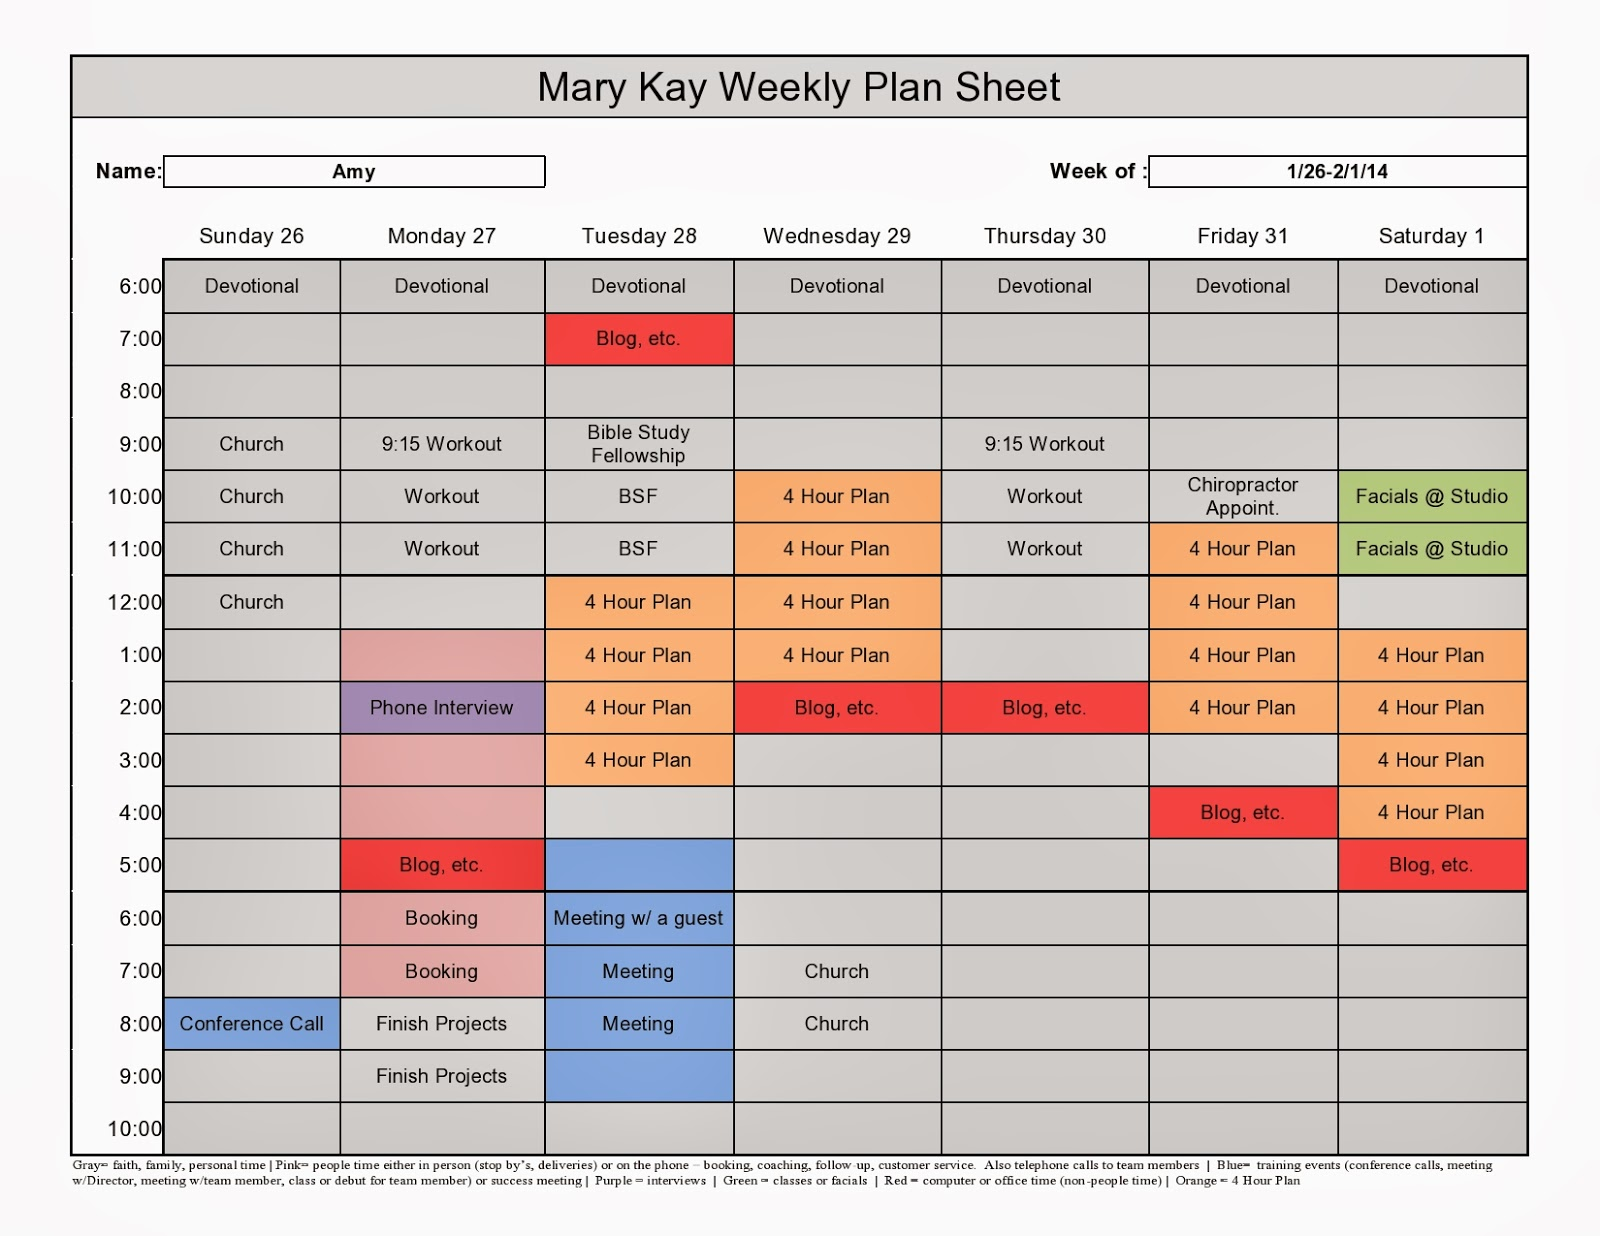 Mary Kay Weekly Plan Sheet